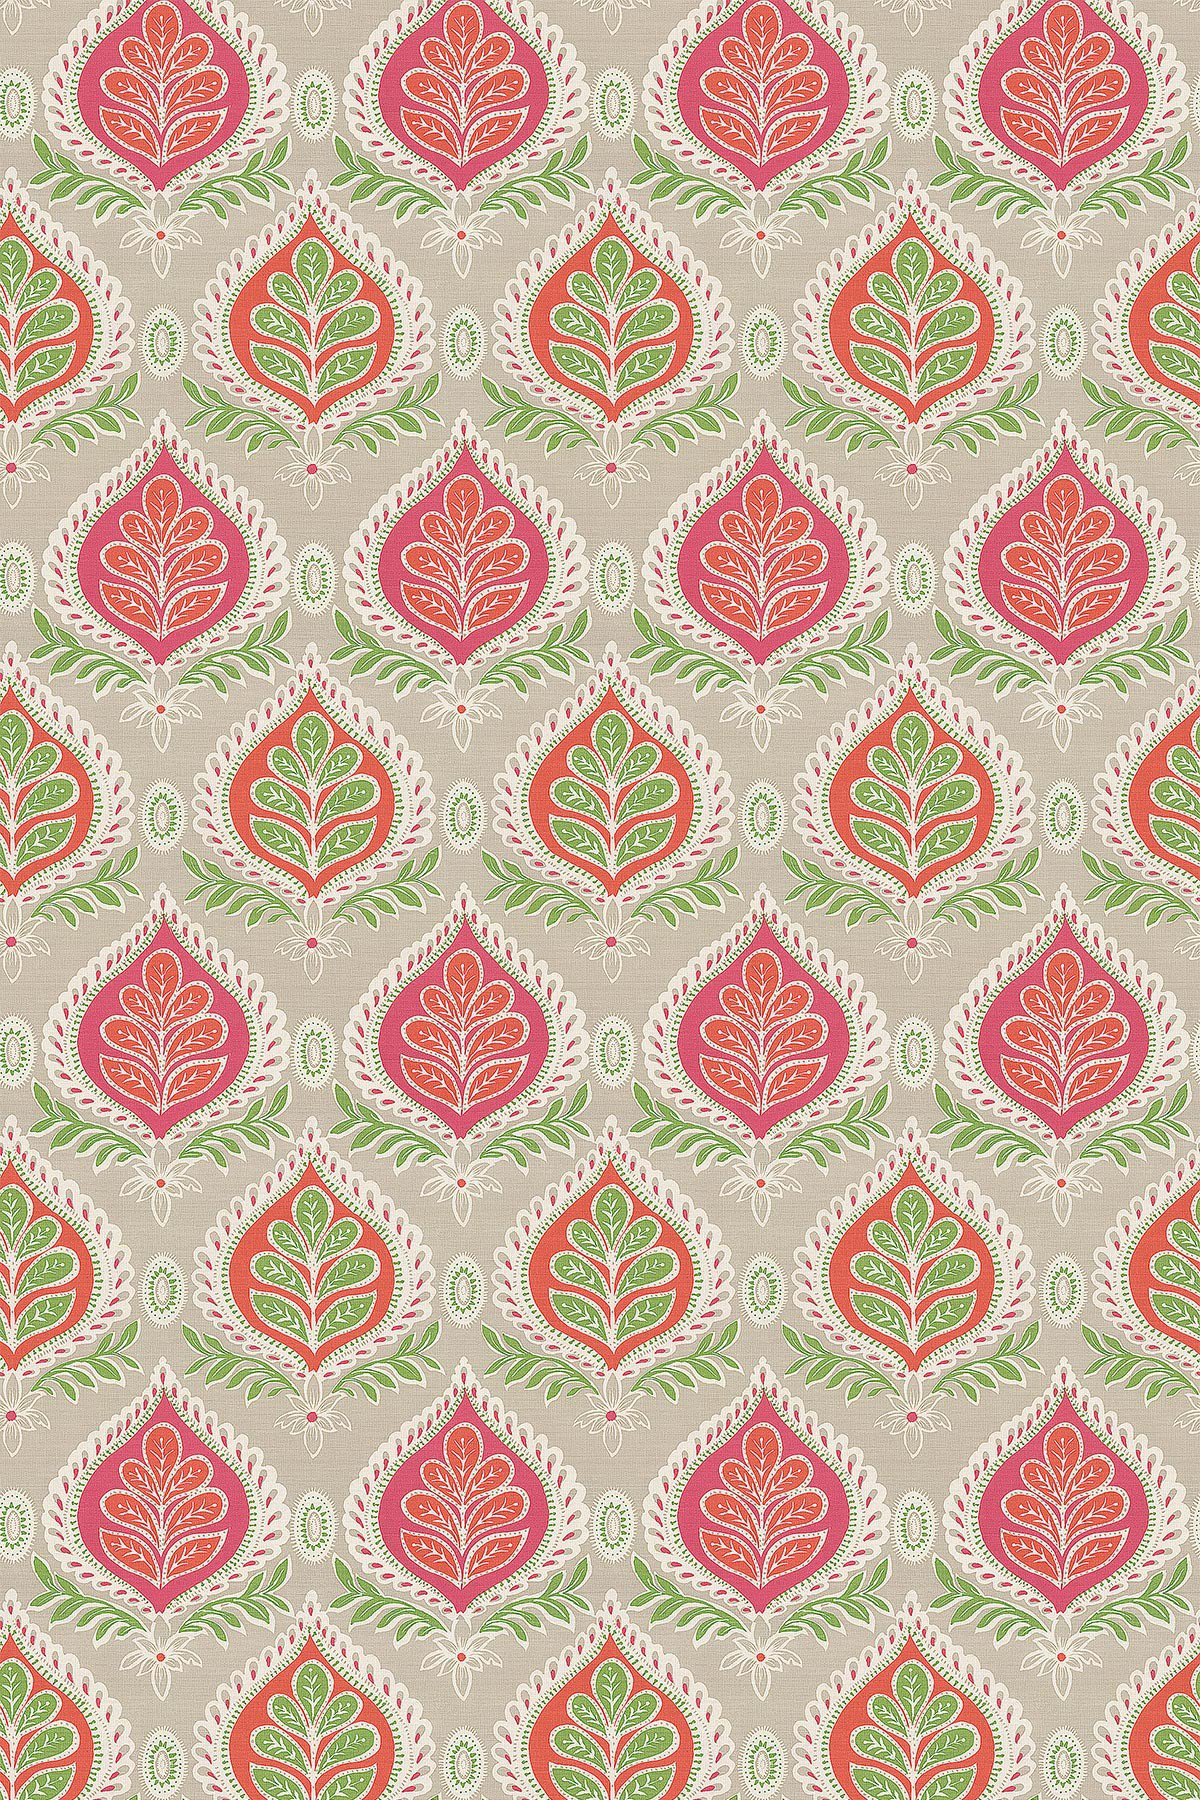 Image of Thibaut Fabric Midland, F924315